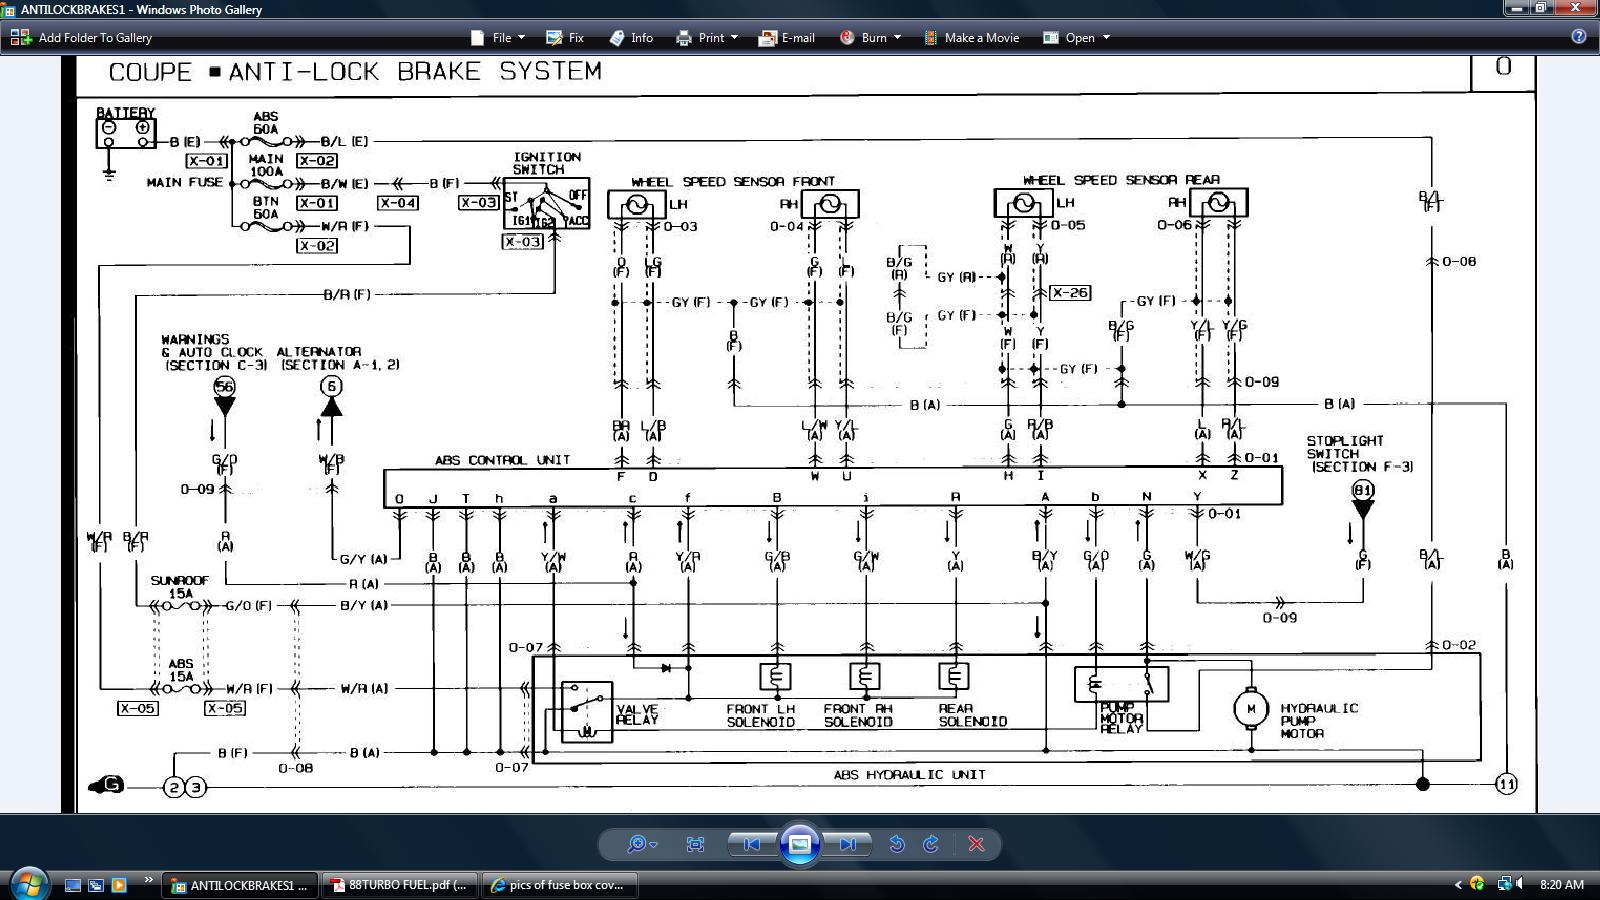 hight resolution of s4 rx7 fuse box diagram wiring diagram schemas4 rx7 fuse box diagram wiring diagram schema s4